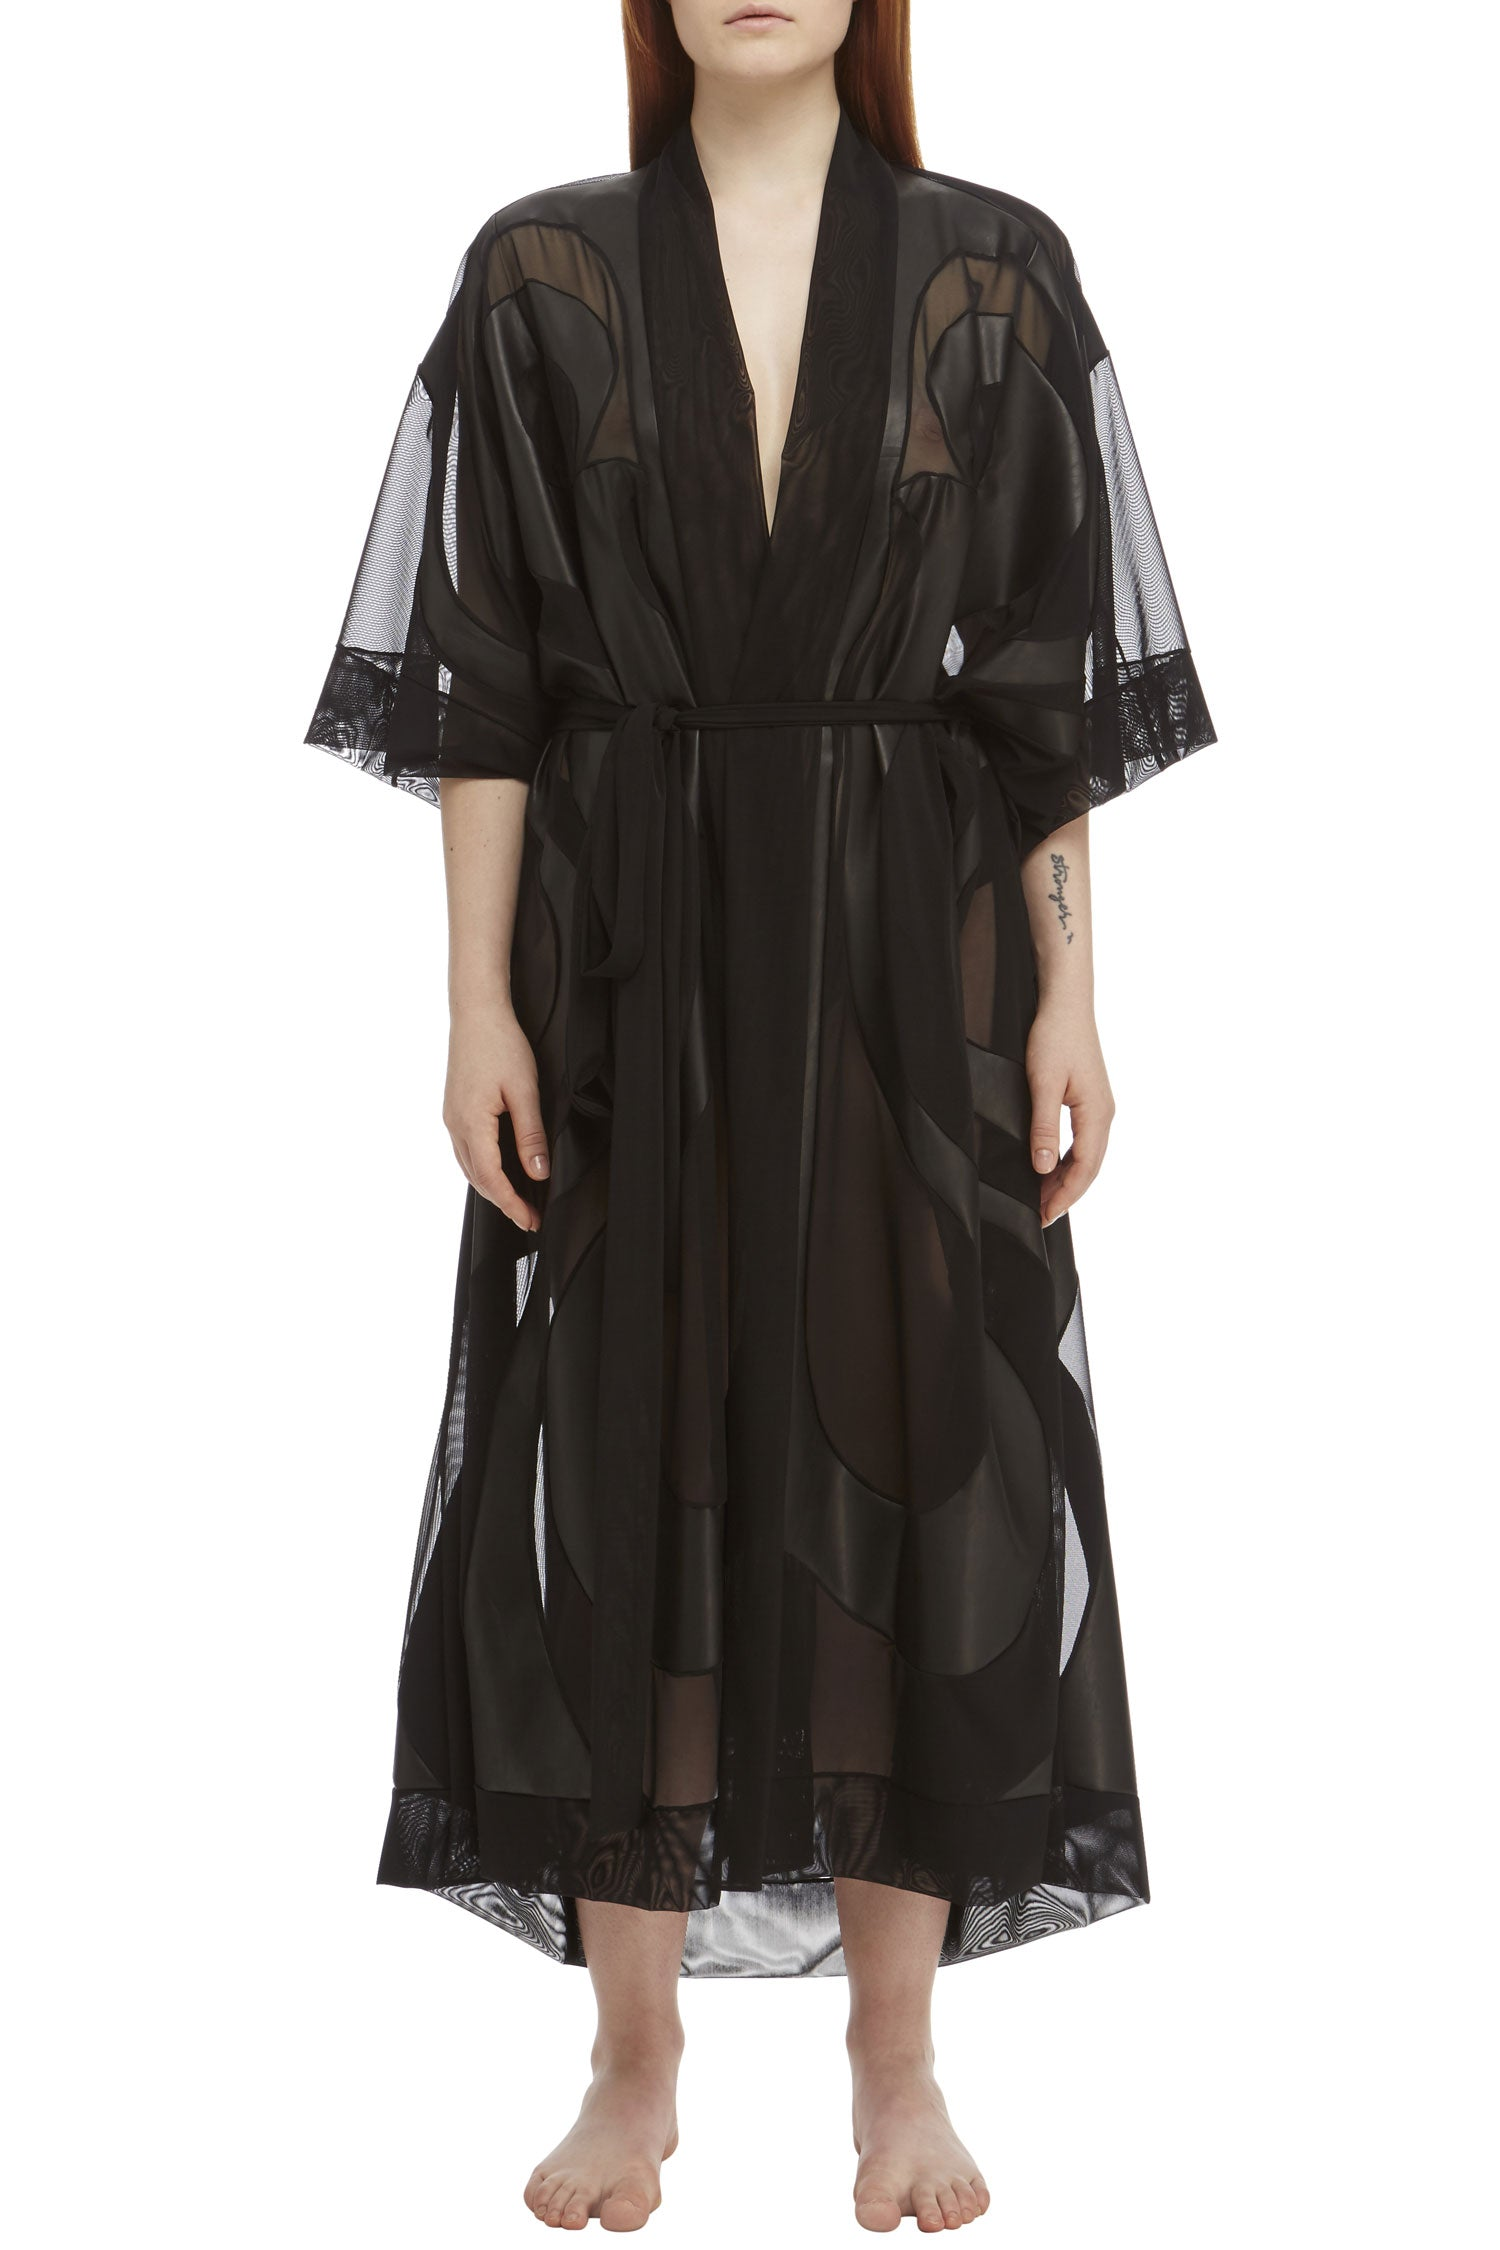 DSTM Phoenix leather and mesh robe